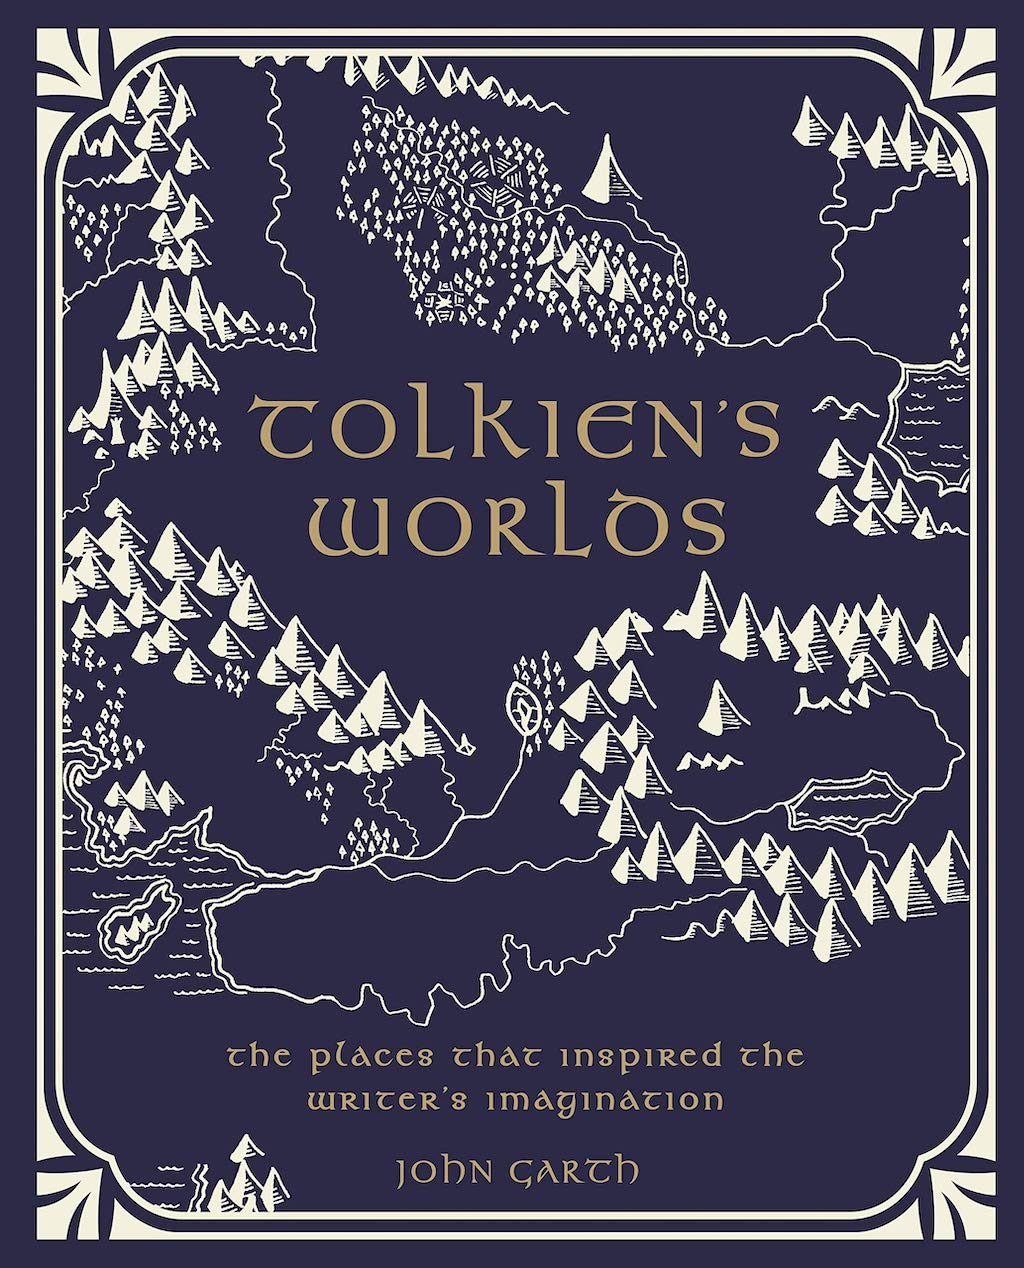 Tolkiens-worlds-garth-web.jpg